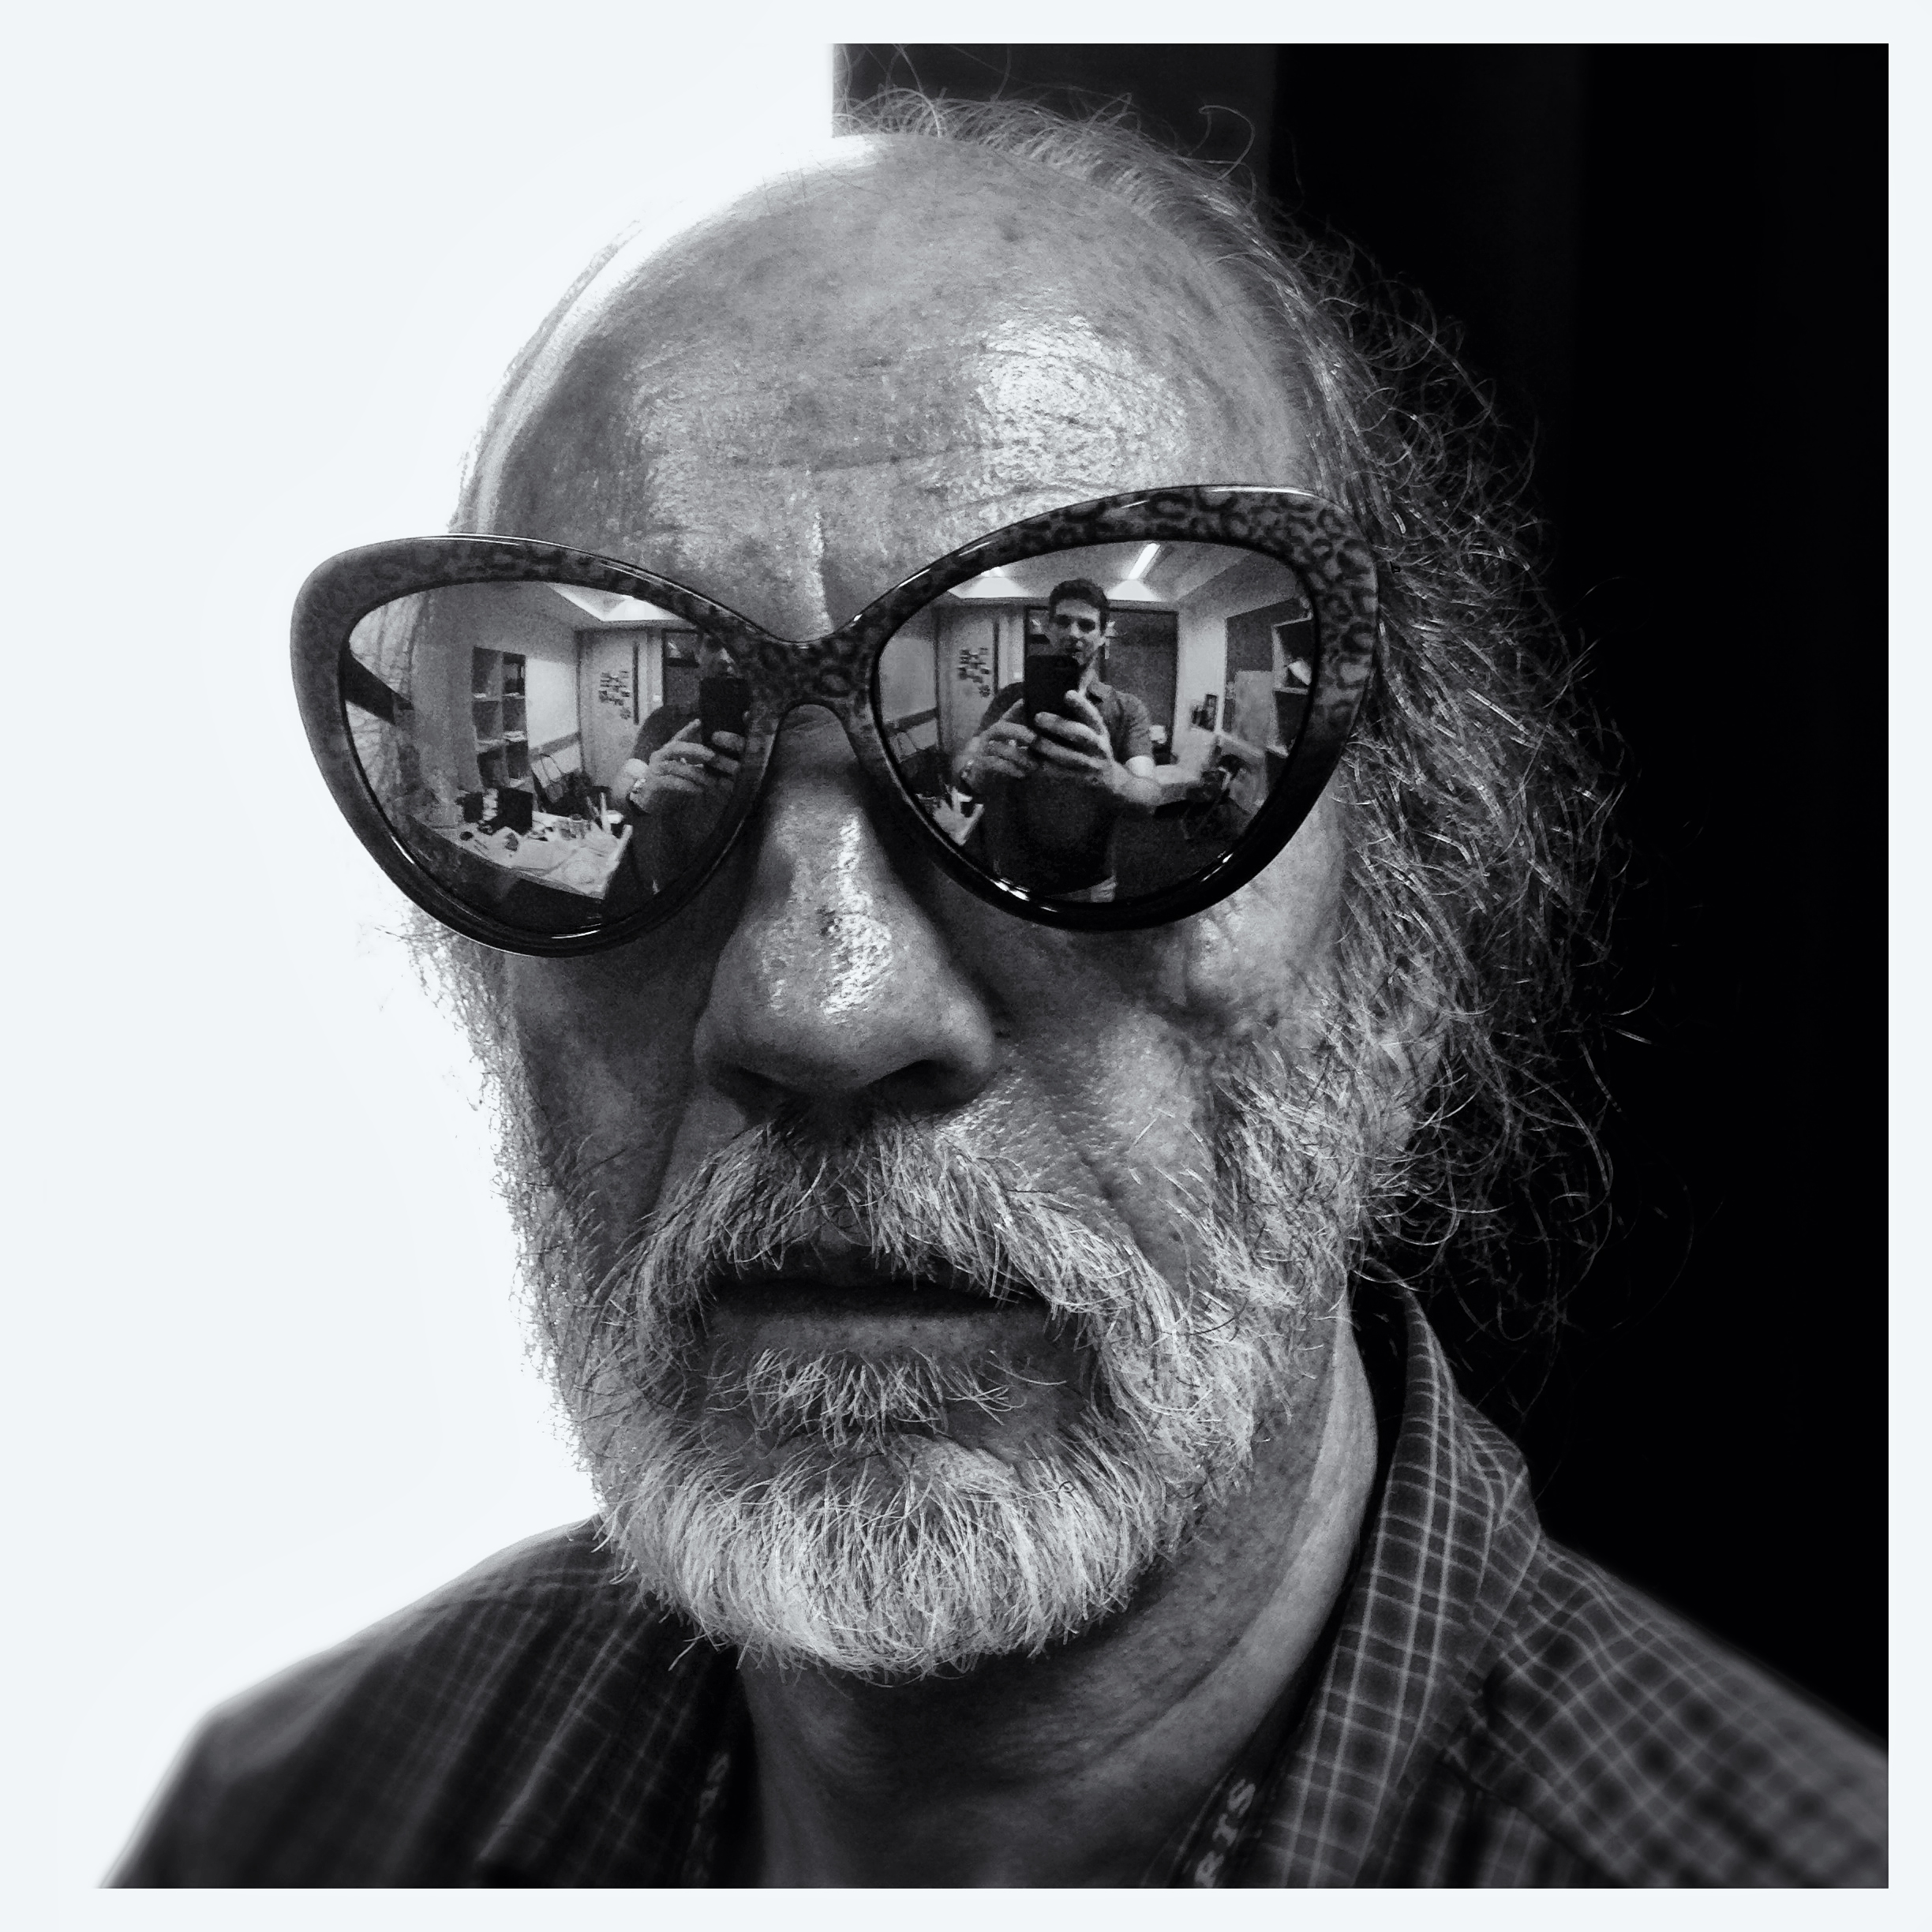 My colleague -looking like Willie Nelson, Guangzhou. August 2014